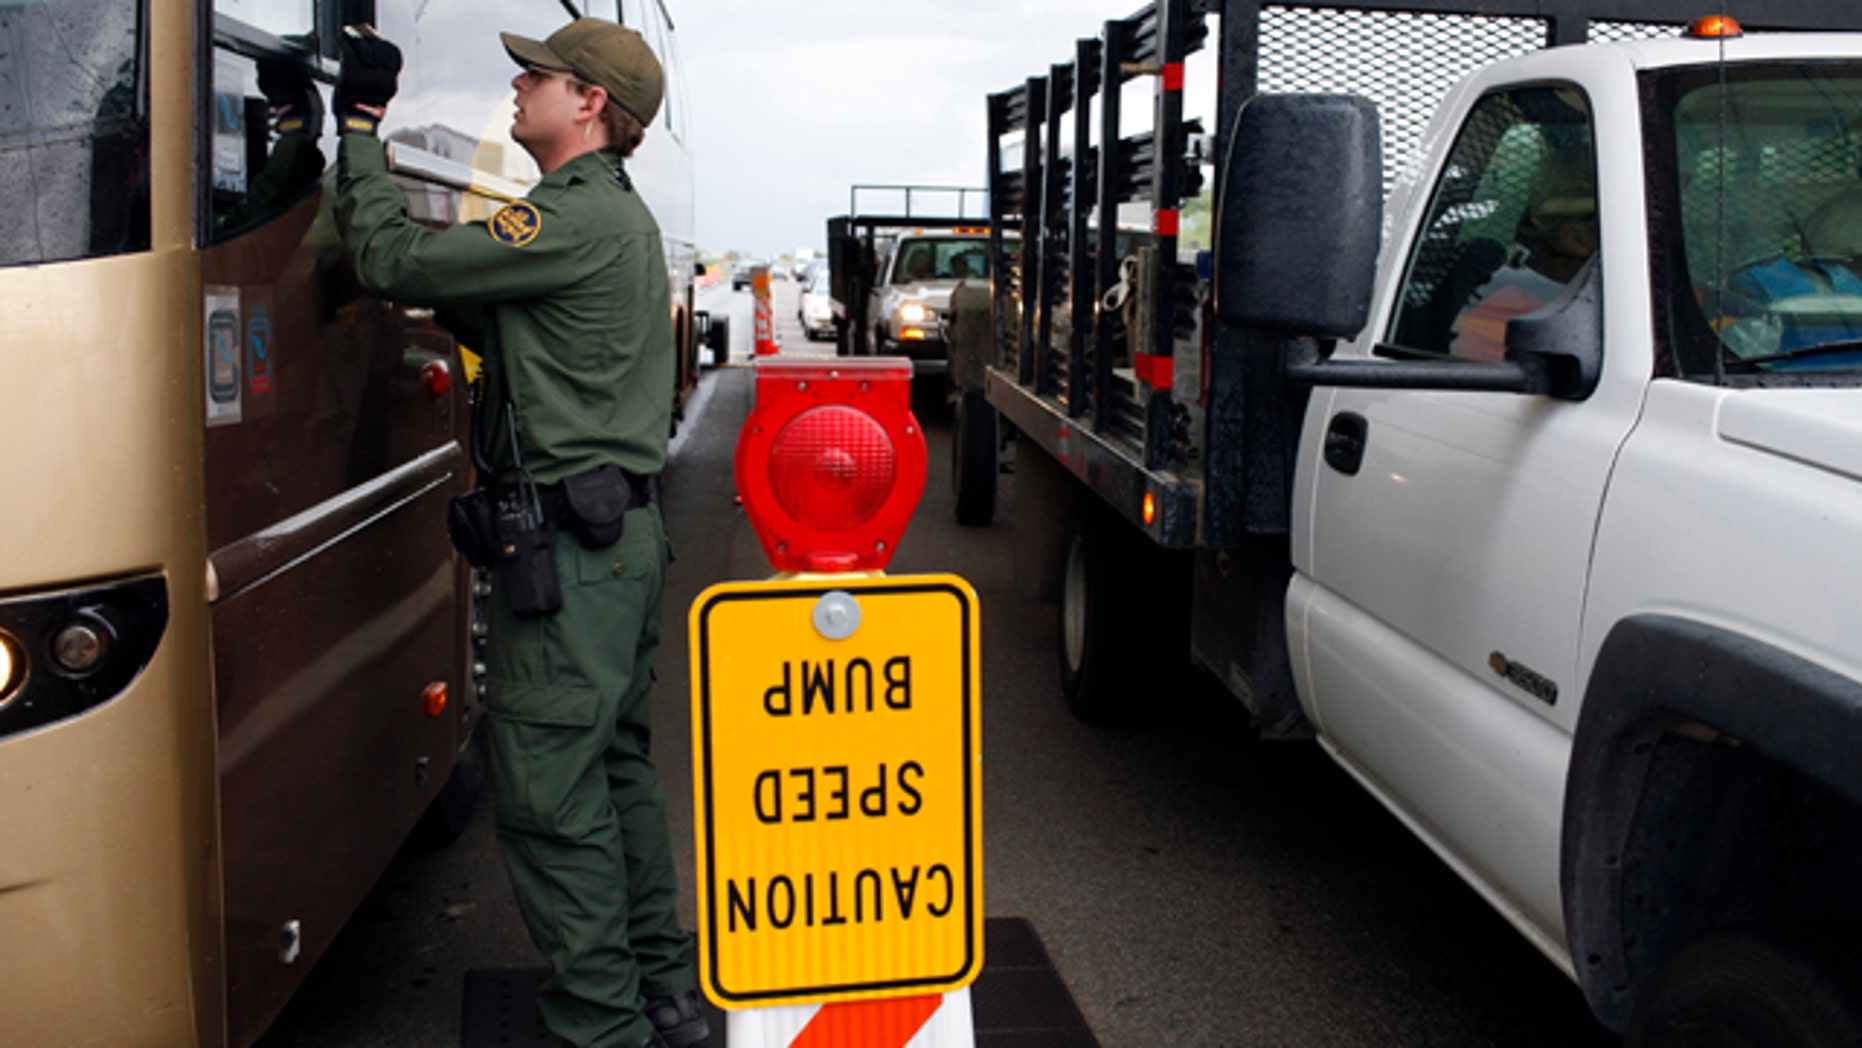 FILE - This July 29, 2010 file photo shows a Border Patrol agent checking the identification card of a bus driver at a checkpoint in Amado, Ariz. The American Civil Liberties Union reported Wednesday Jan. 15, 2014 that border patrol agents at checkpoints across southern Arizona are routinely violating the constitutional rights of U.S. residents, including unjustified detentions and illegal searches as a pretext to investigating other criminal activity in violation of the agency's mandate that stops be limited to inquiring about citizenship and visually inspecting vehicles.  (AP Photo/Jae C. Hong, file)